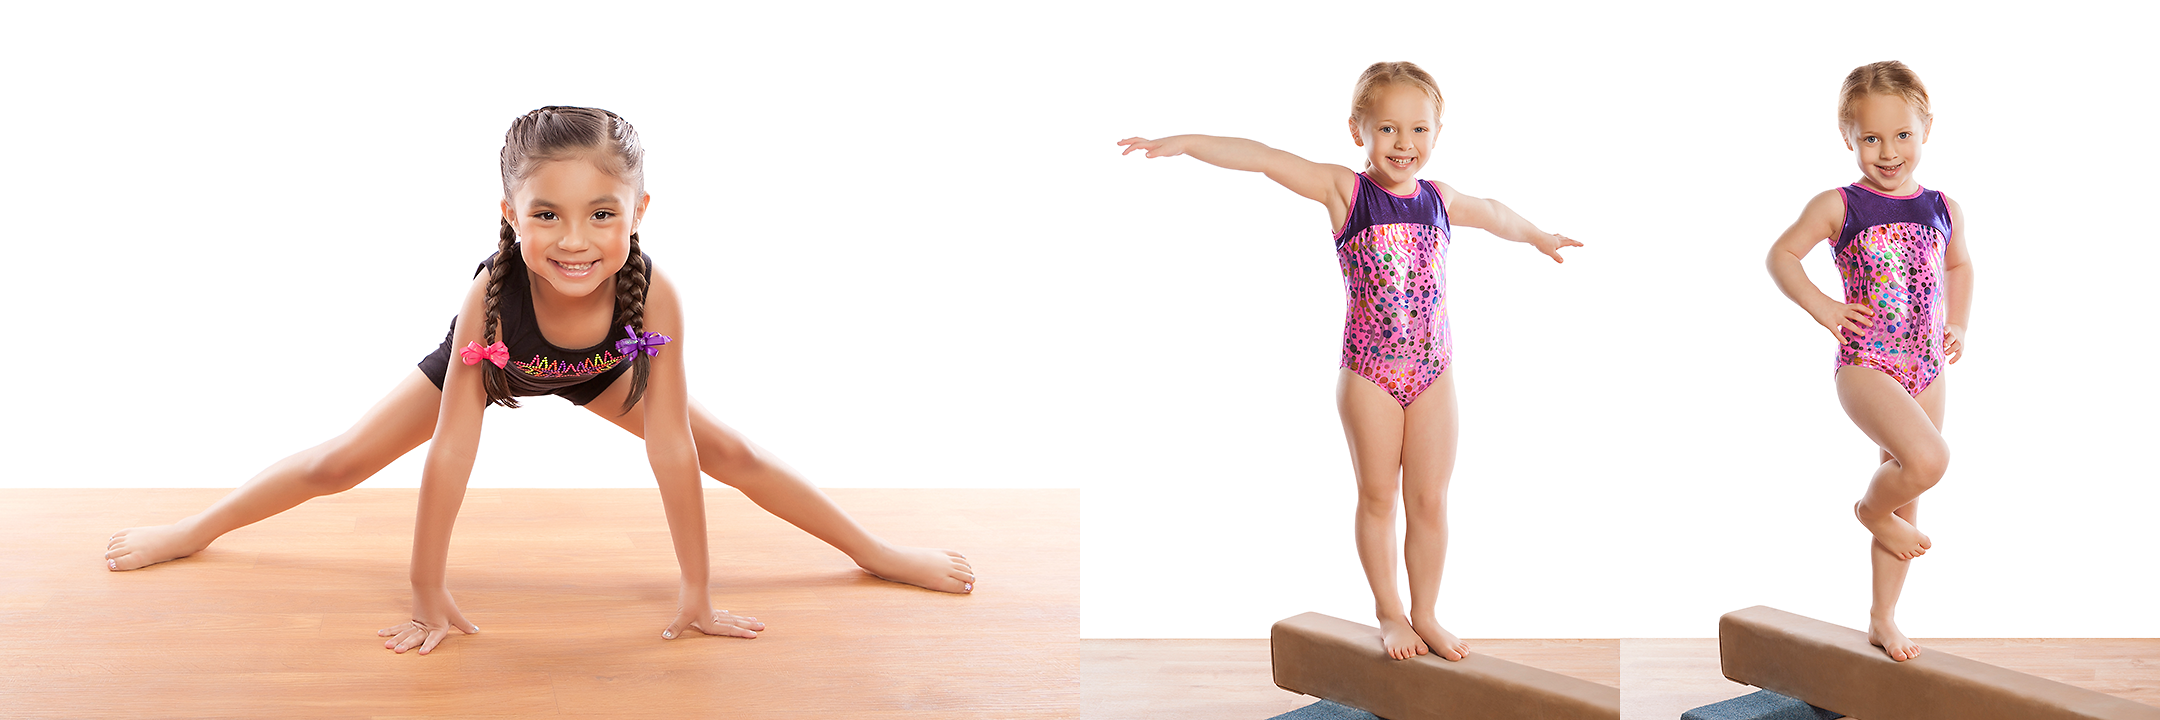 pre-school-gymnastics-photography-10